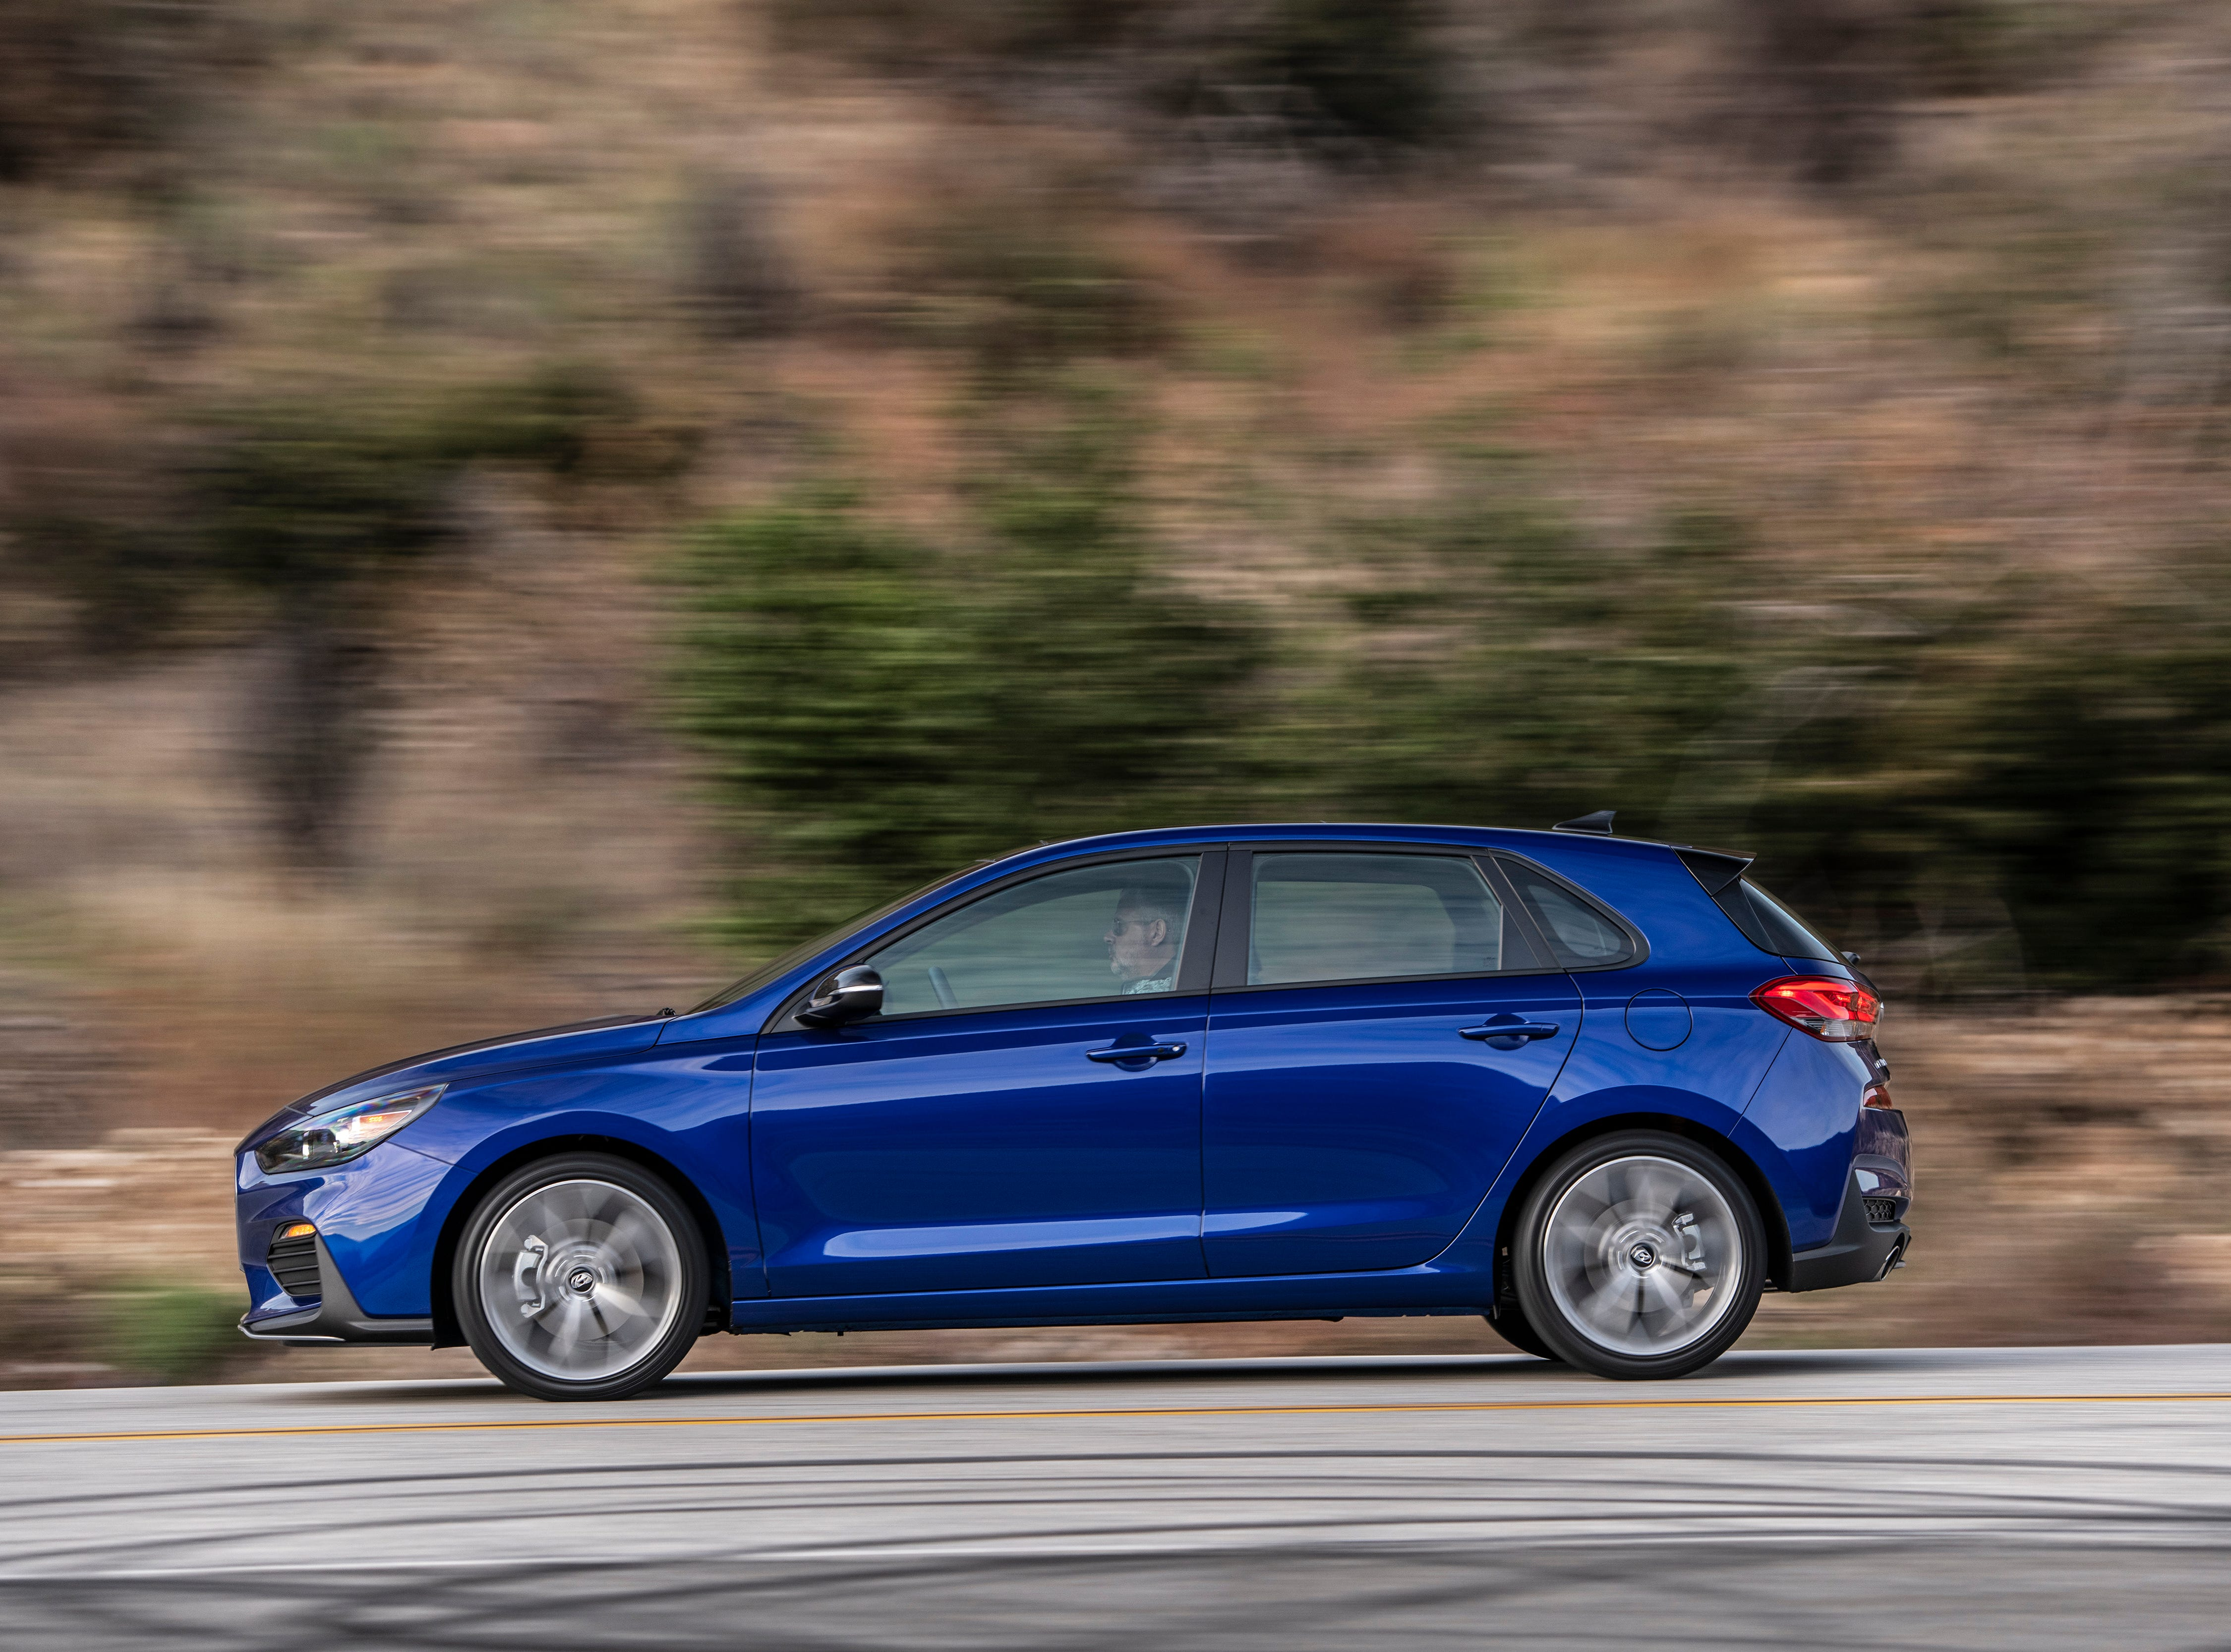 """""""The Elantra GT N Line includes a 1.6-liter turbocharged-GDI engine with six-speed manual transmission or an optional seven-speed DCT with larger steering wheel mounted paddle shifters. This drivetrain produces 201 horsepower and 195 lb.-ft. torque to meet performance and fuel efficiency needs."""""""